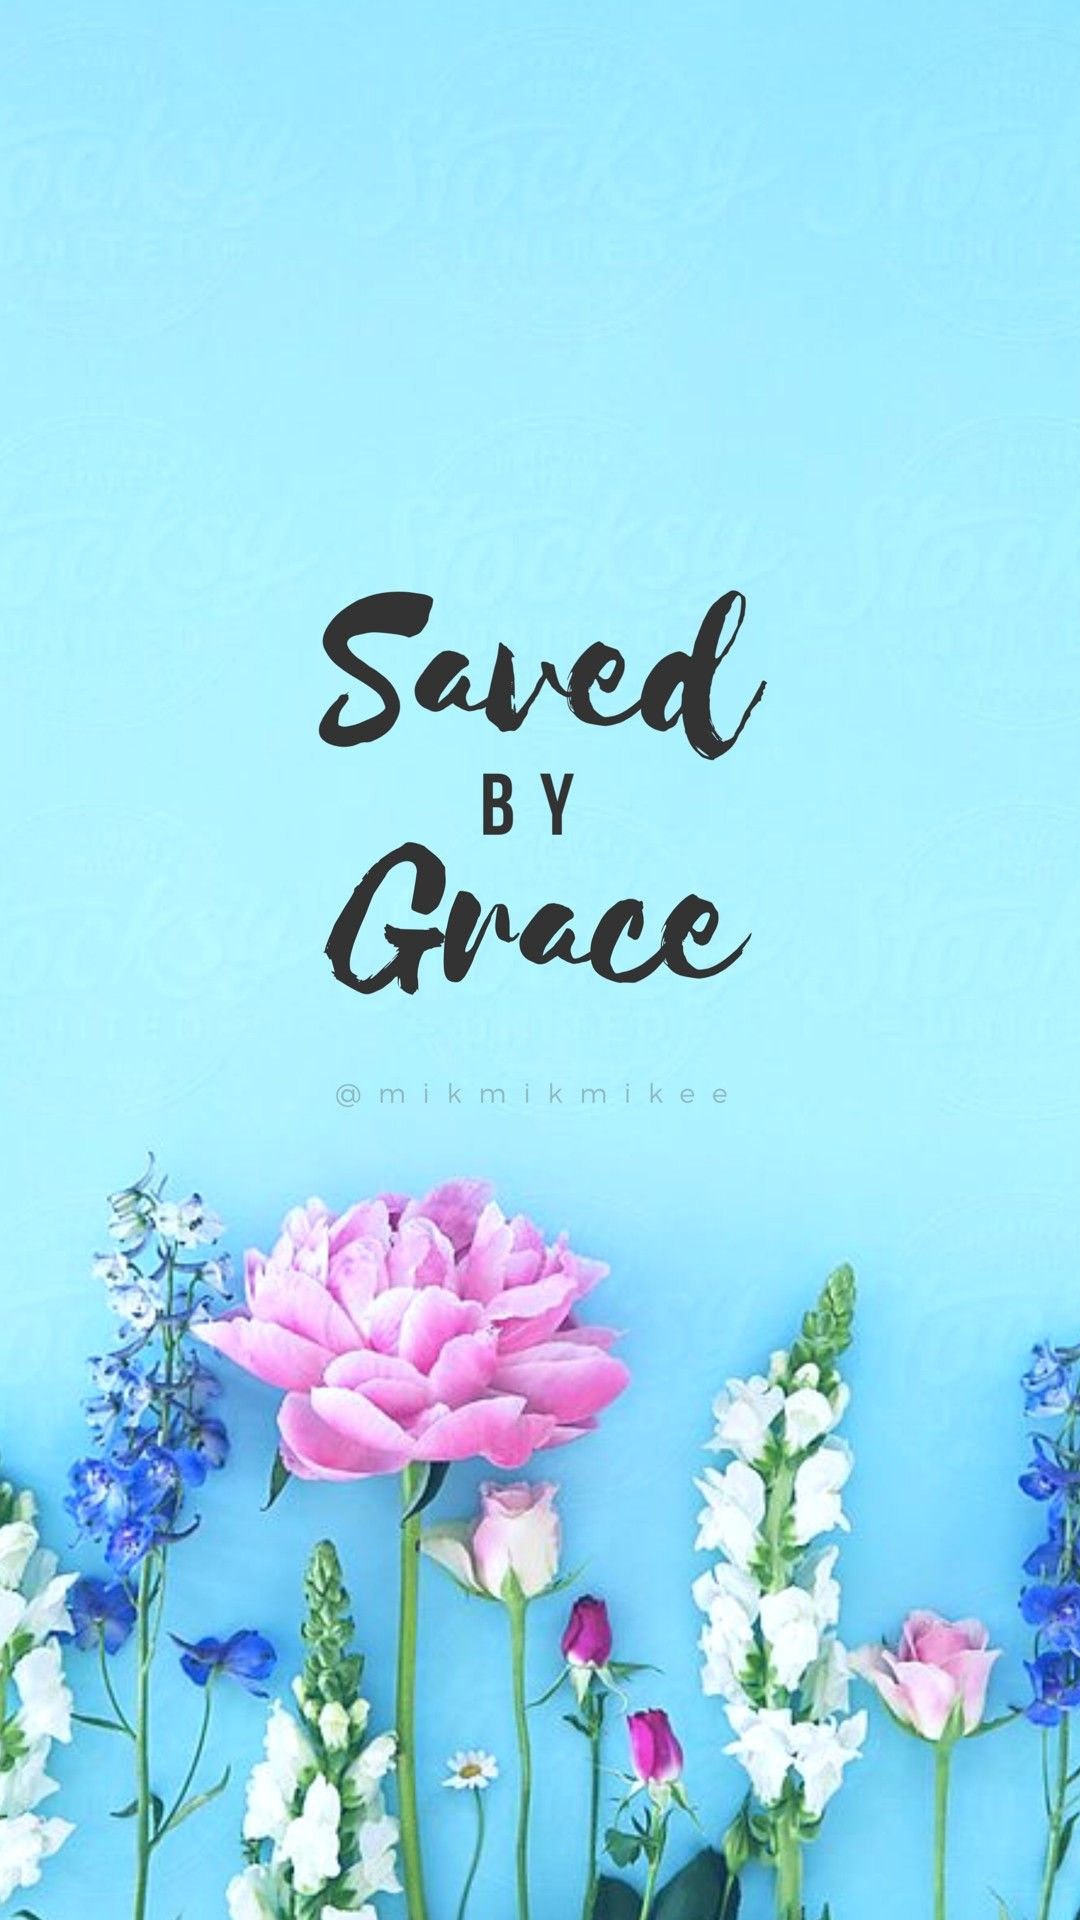 Saved by Grace Wallpaper by Mikmikmikee Wallpaper bible Phone 1080x1920